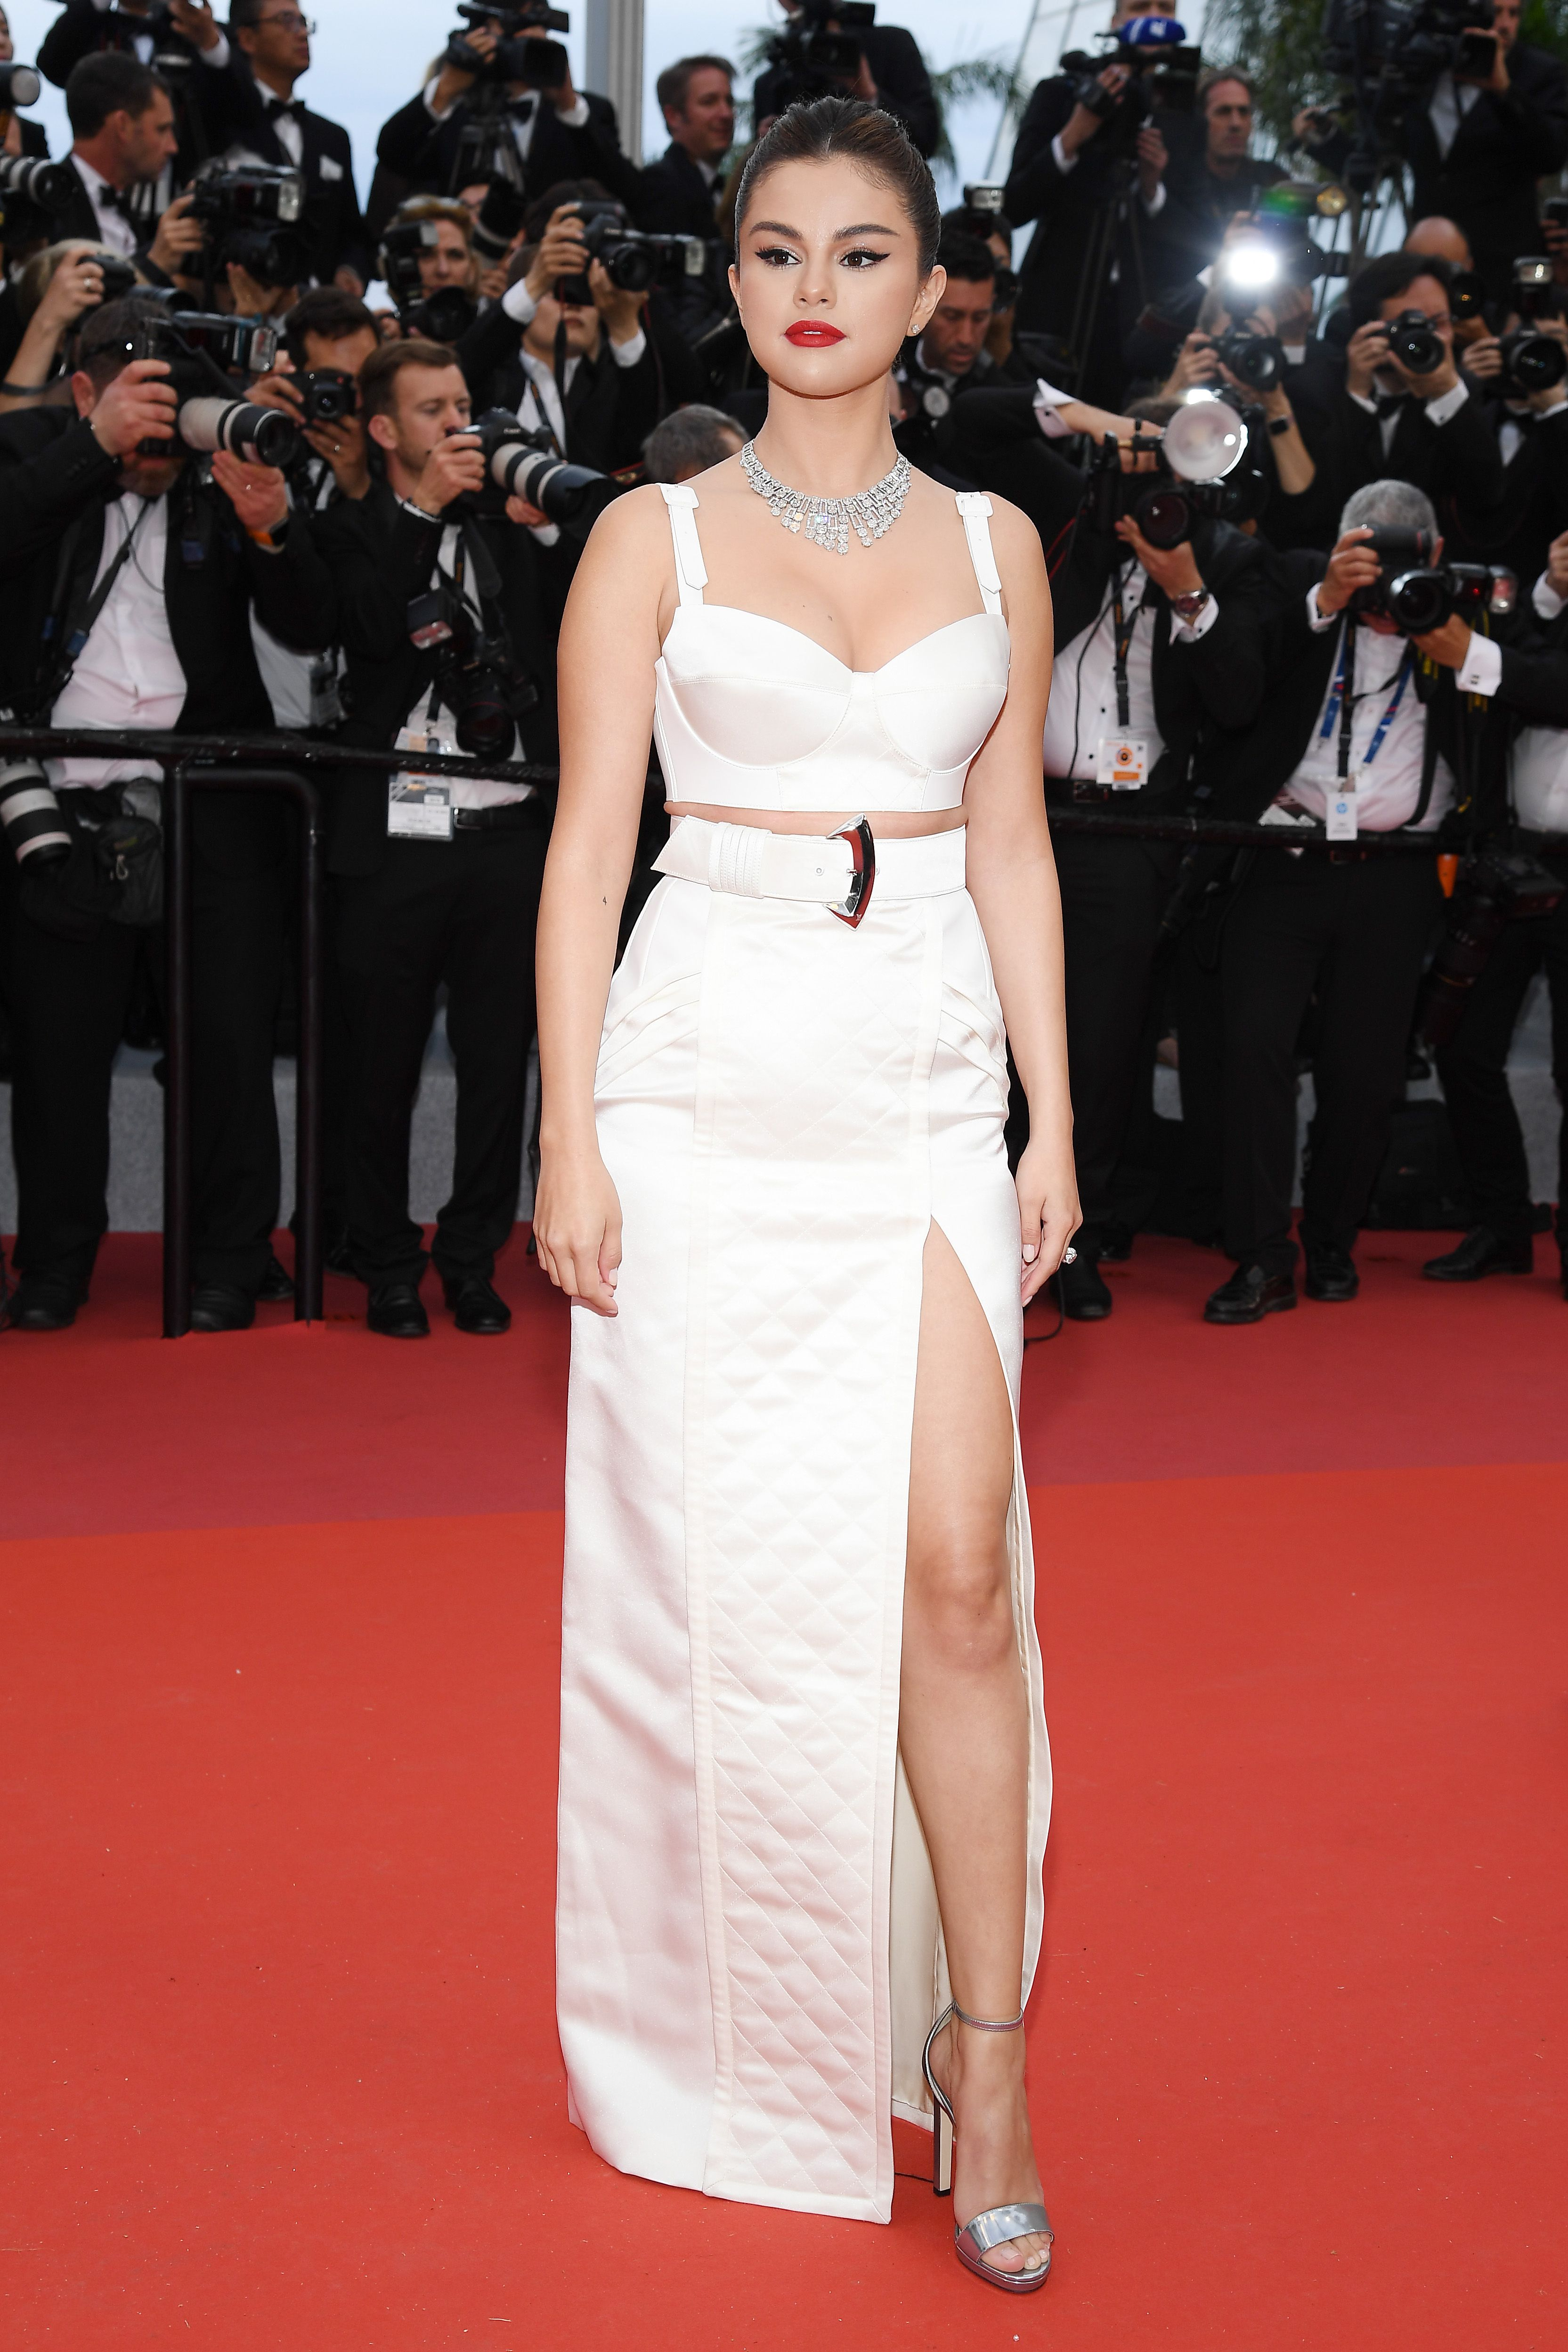 Selena Gomez In Louis Vuitton and Bulgari jewels at the opening ceremony of the Cannes Film Festival and premiere of The Dead Don't Die .